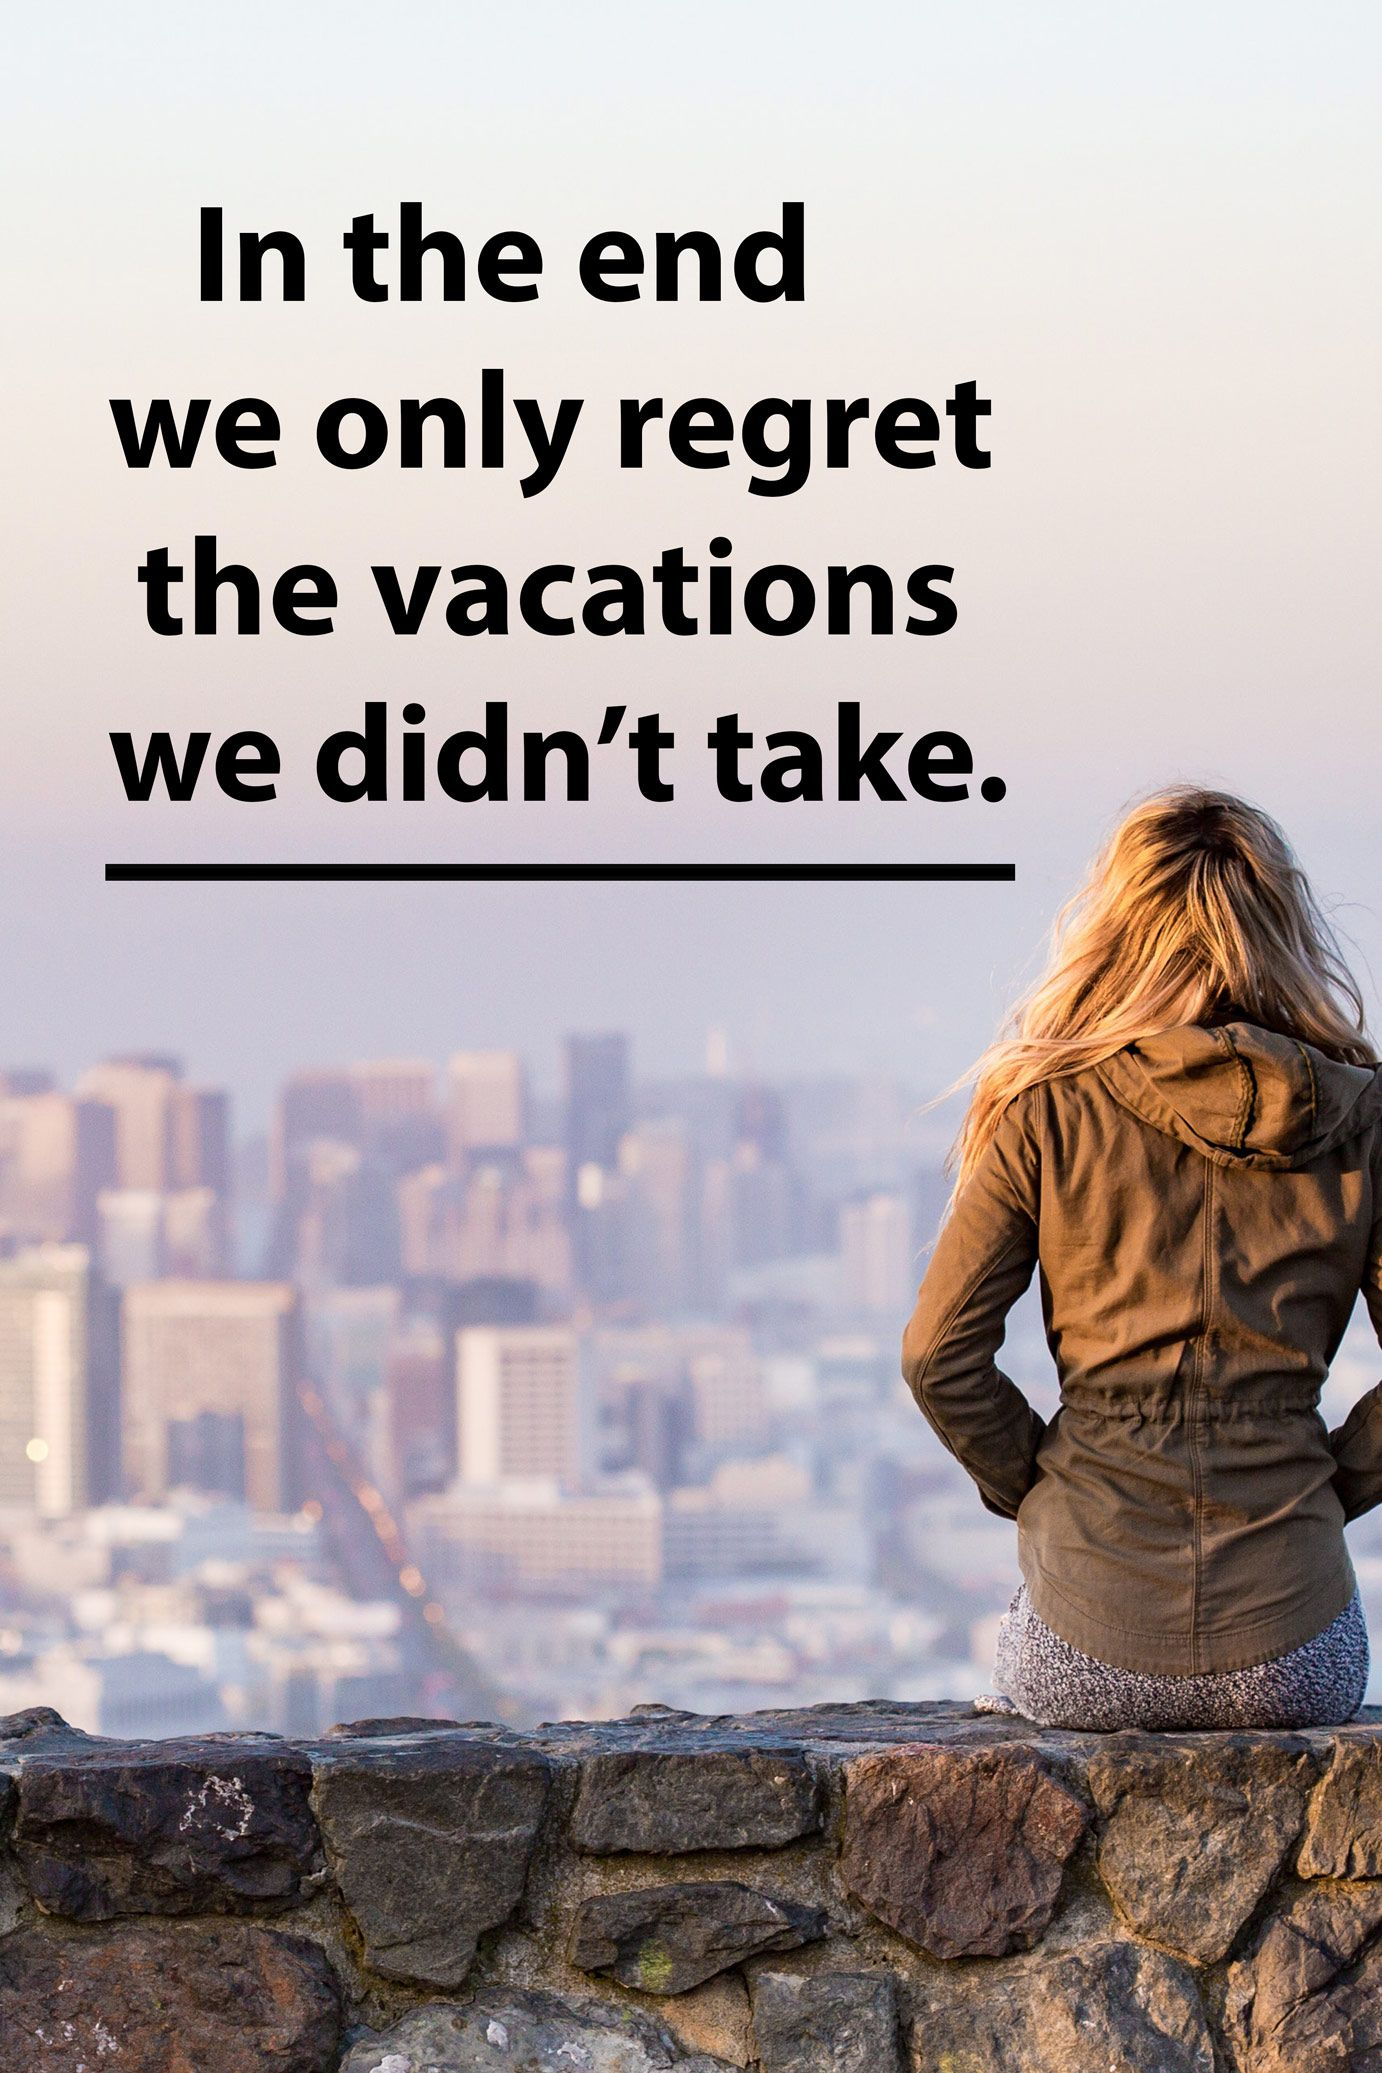 In The End We Only Regret The Vacations We Didn T Take Travelquotes Adventurequotes Lifequotes Vacations Fun Travel Quotes Ending Quotes Adventure Quotes